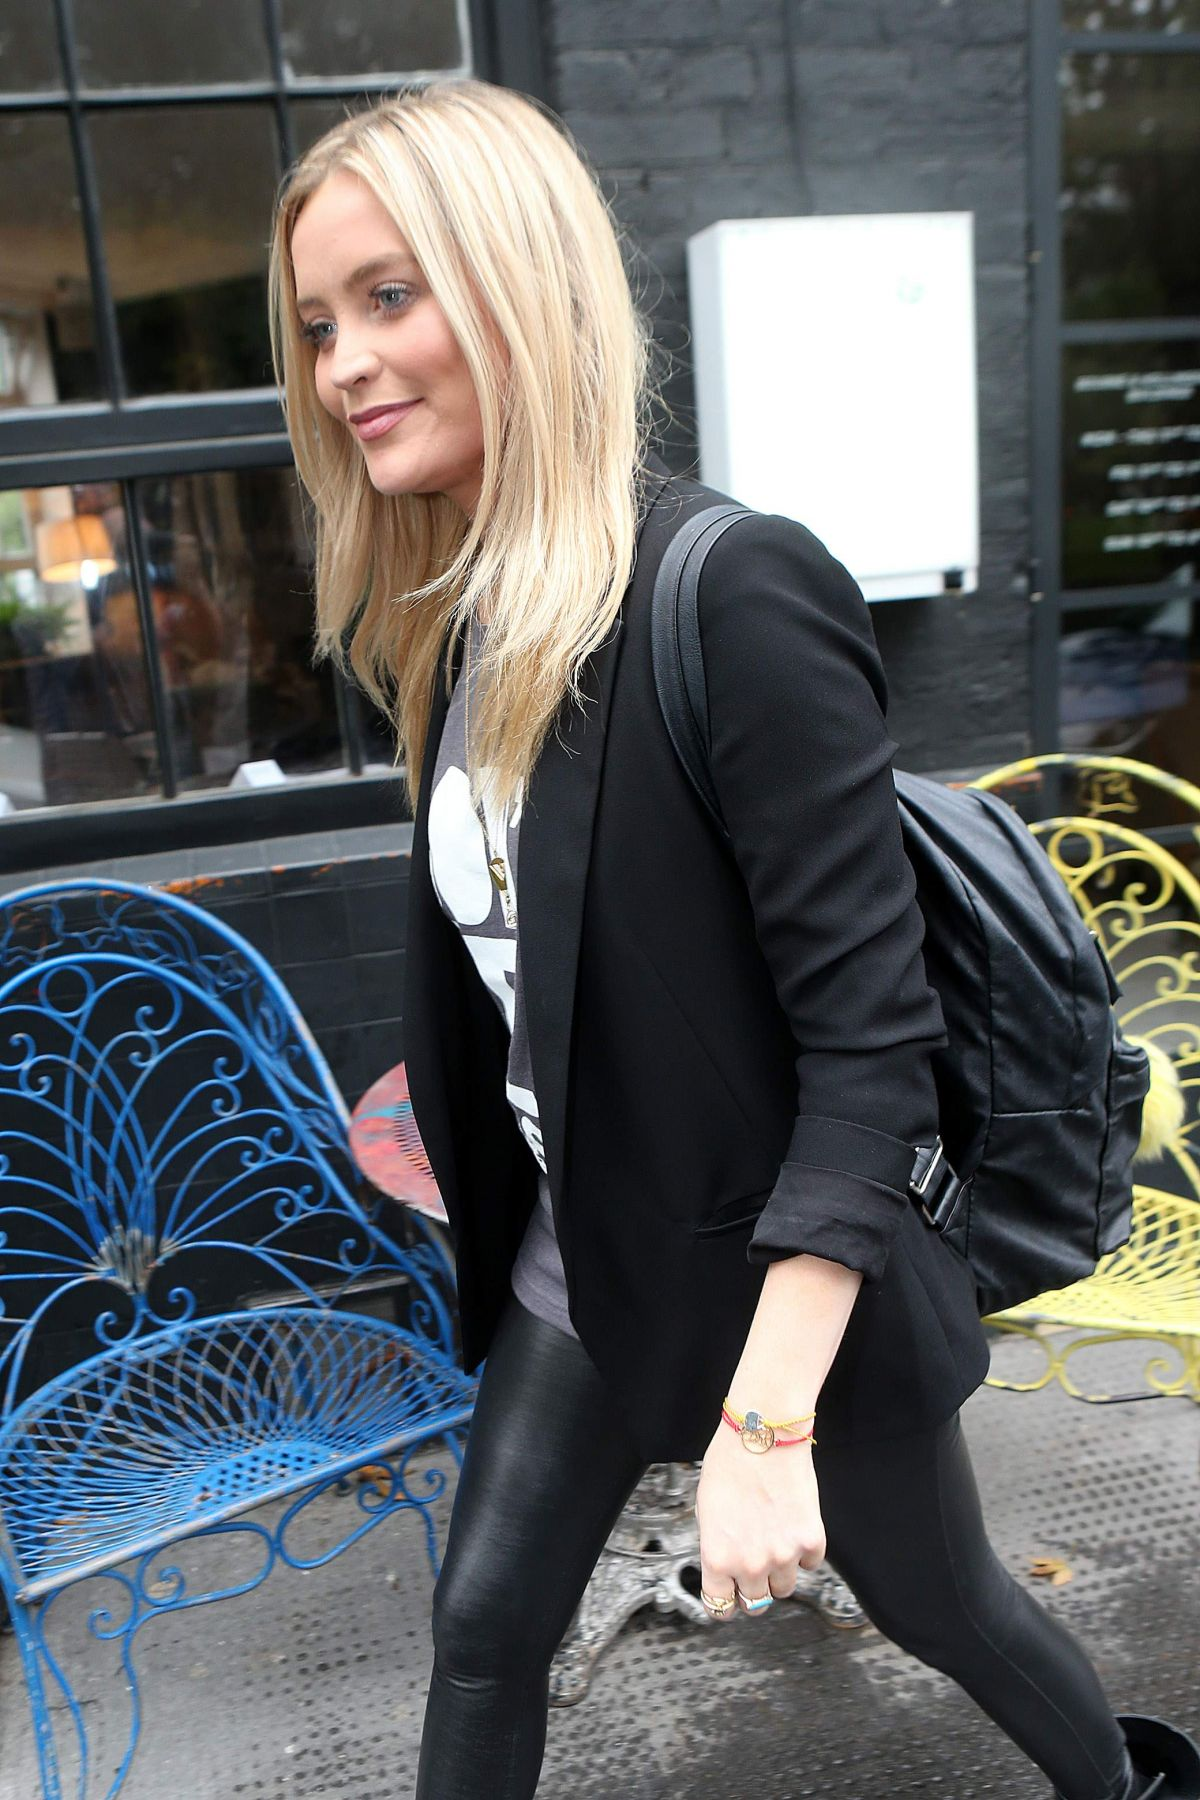 Photos Laura Whitmore naked (55 foto and video), Topless, Hot, Twitter, panties 2017